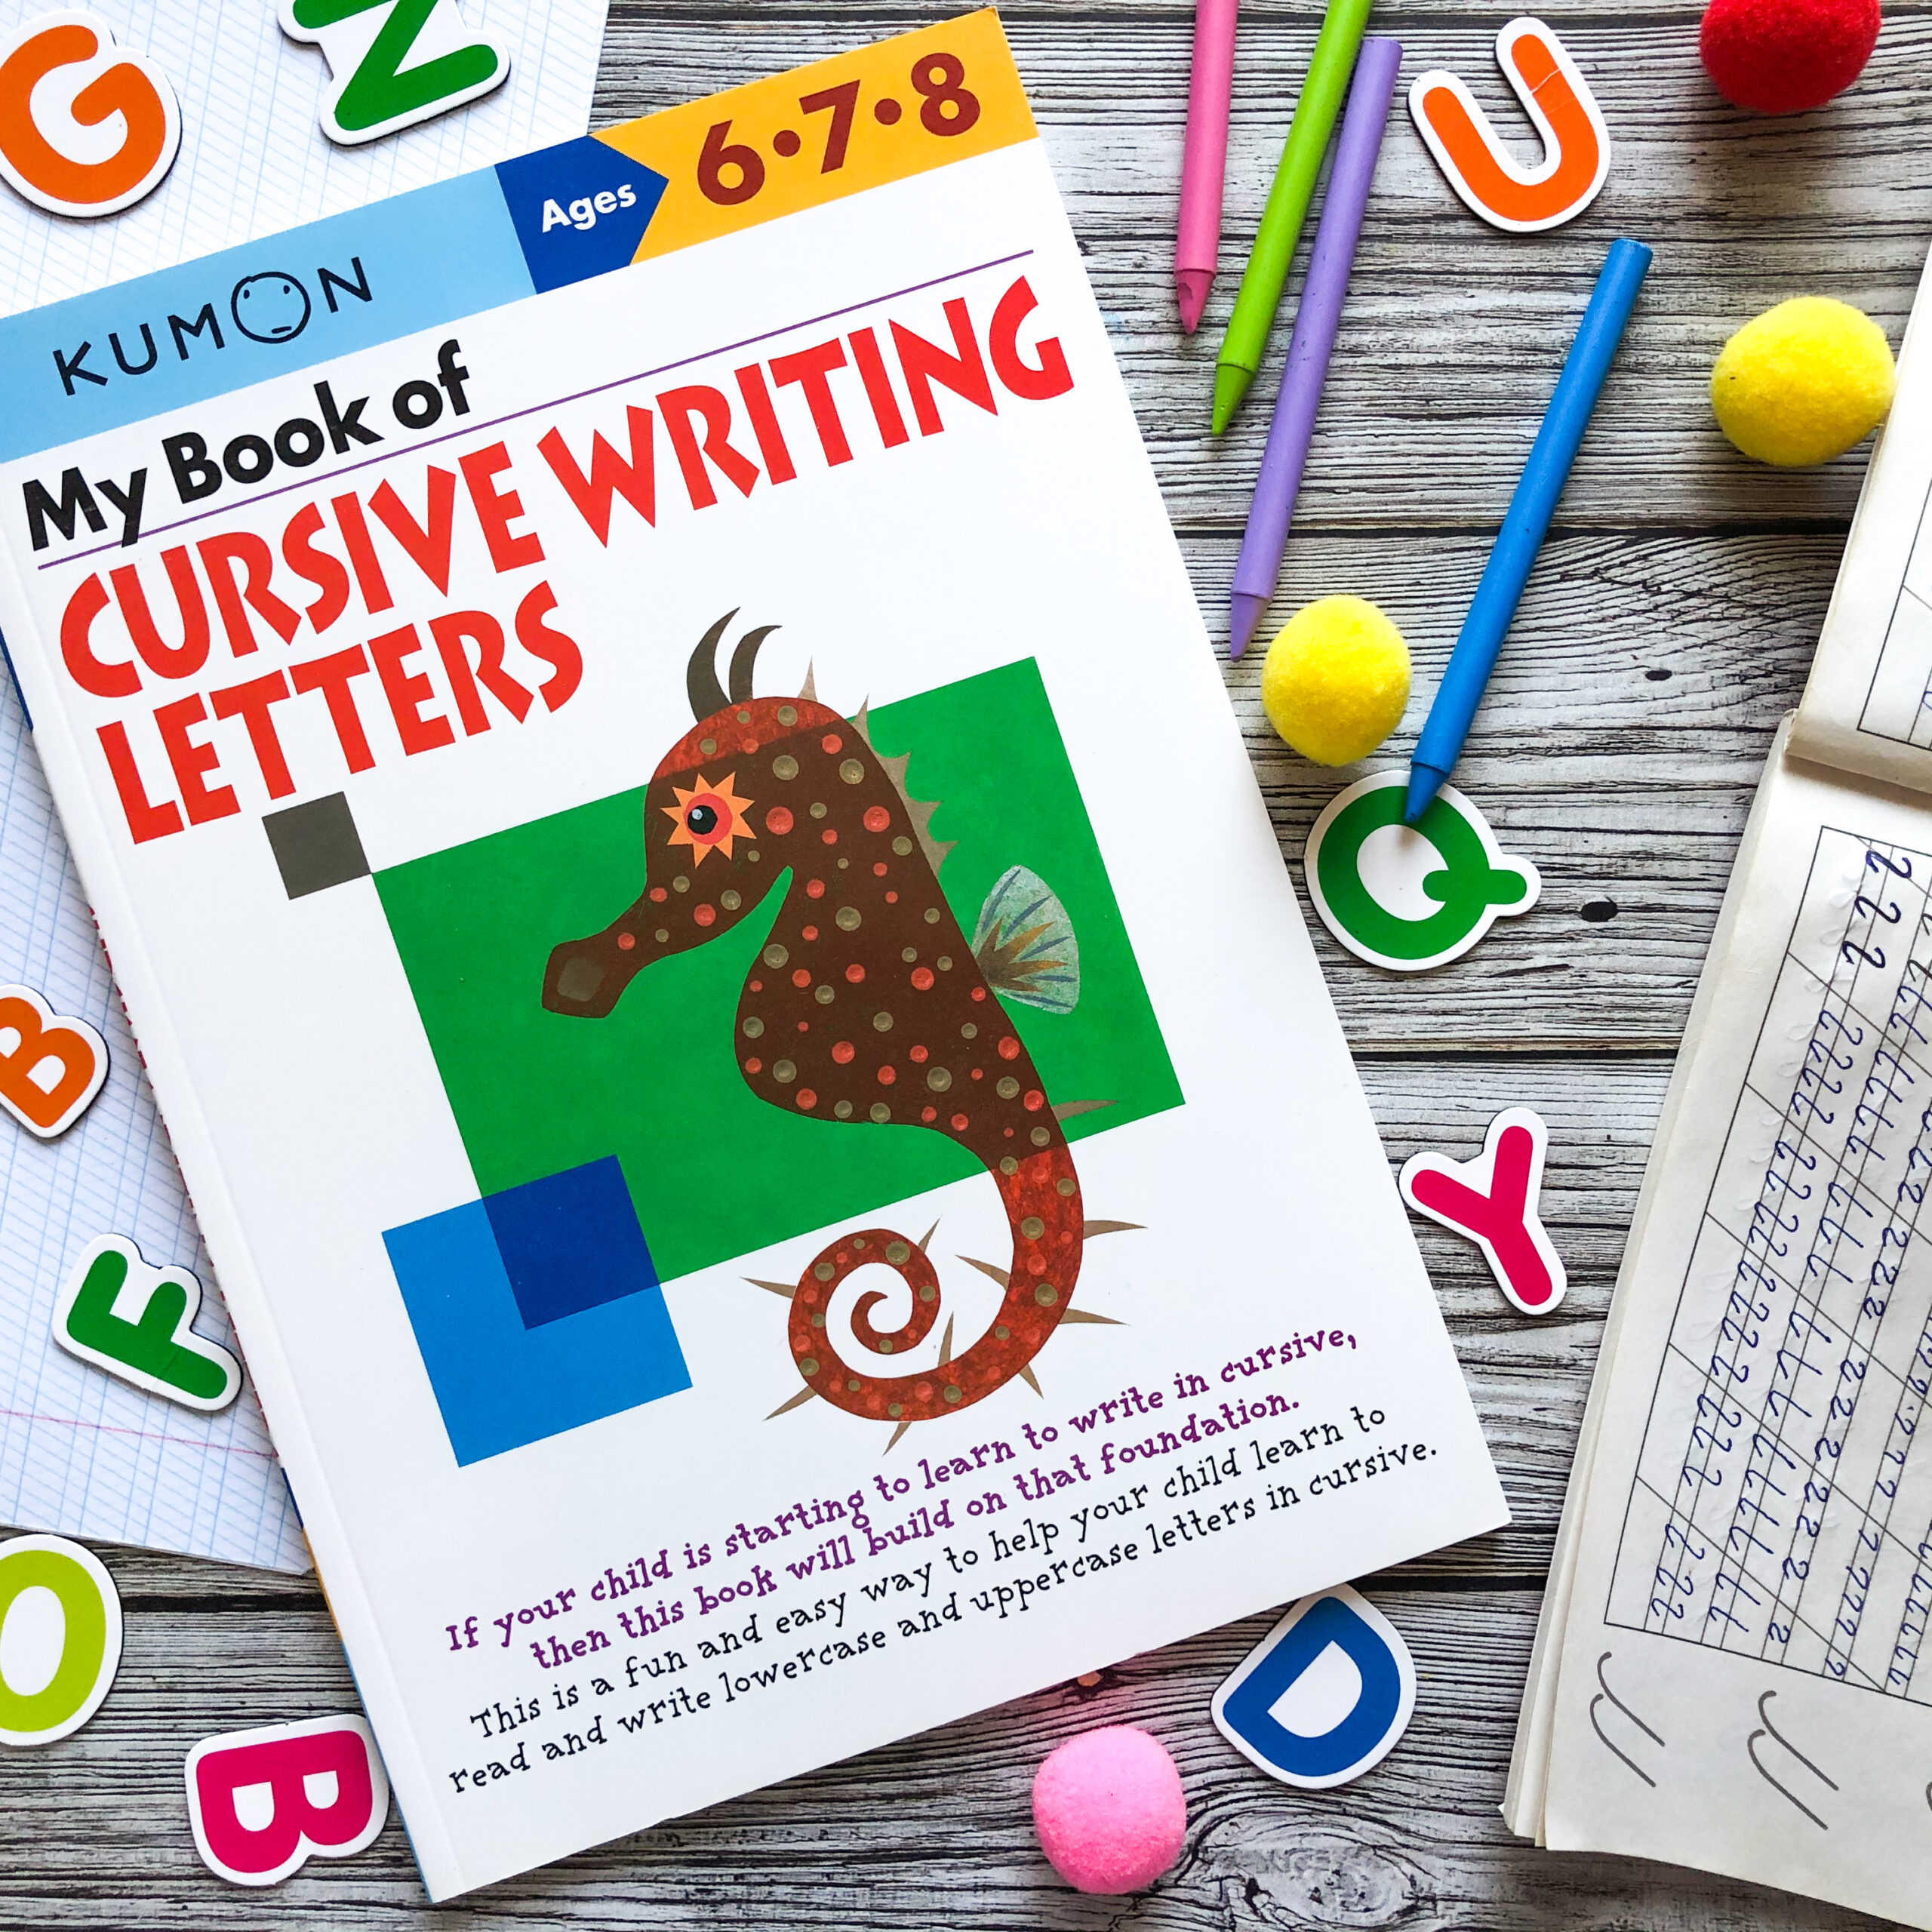 My Book Of Cursive Writing: Letters, 6-8